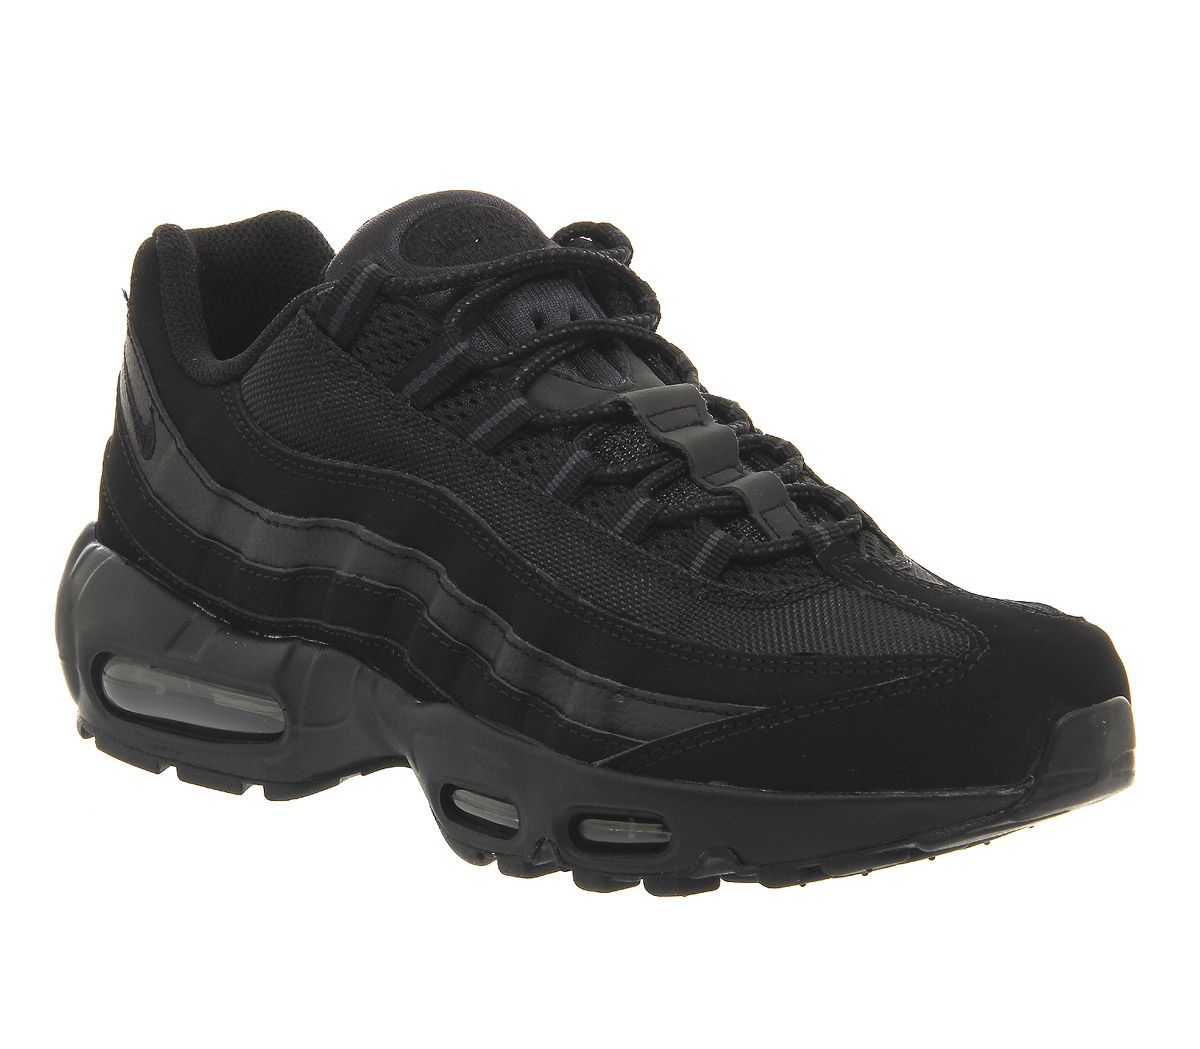 d9b48abe2098 Nike Air Max 95 Black Black Anthracite - His trainers